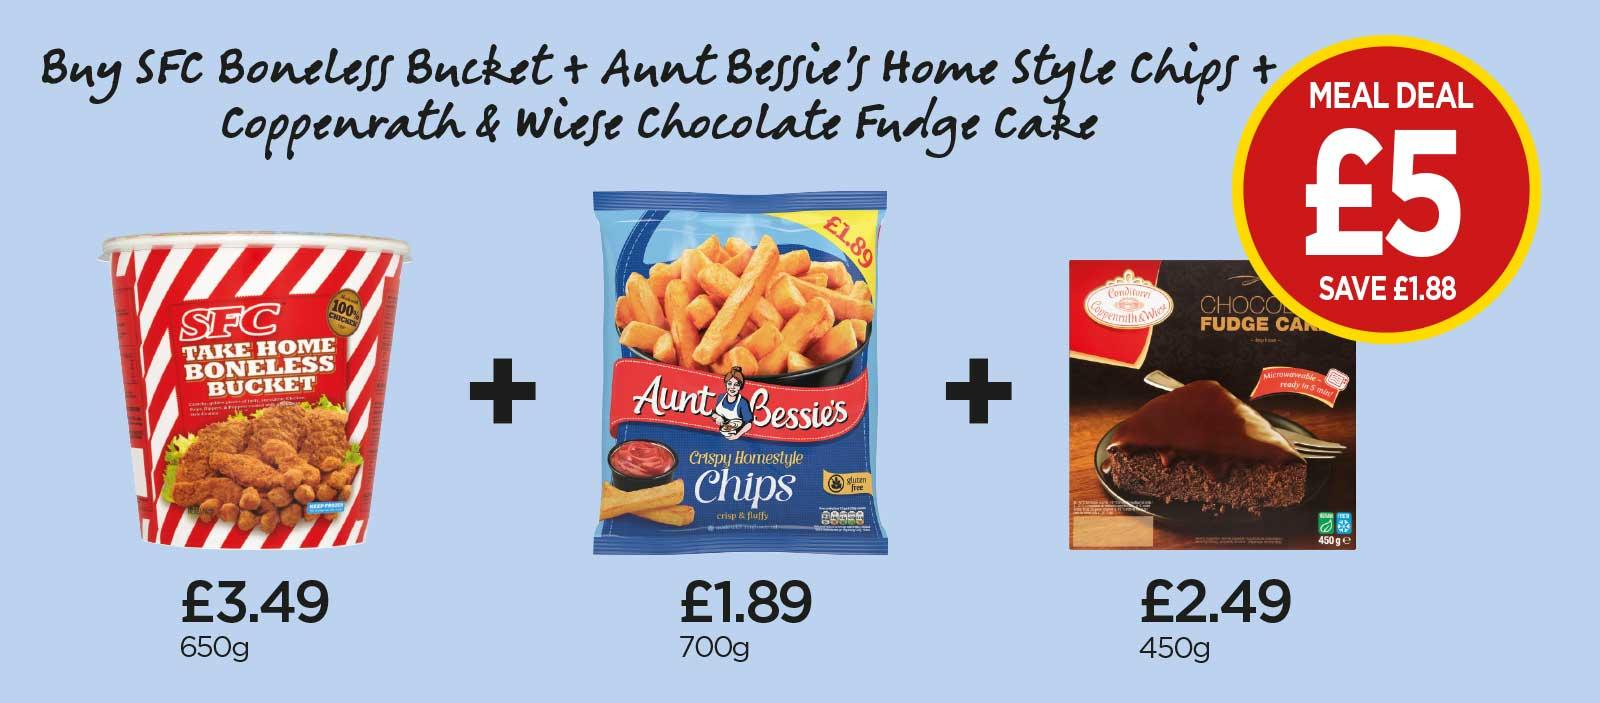 FROZEN MEAL DEAL: Southern Fried Chicken Boneless Bucket, Aunt Bessie's Homestyle Chips, Conditorei Coppenwrath Wiese Chocolate Fudge Cake - £5 at Budgens